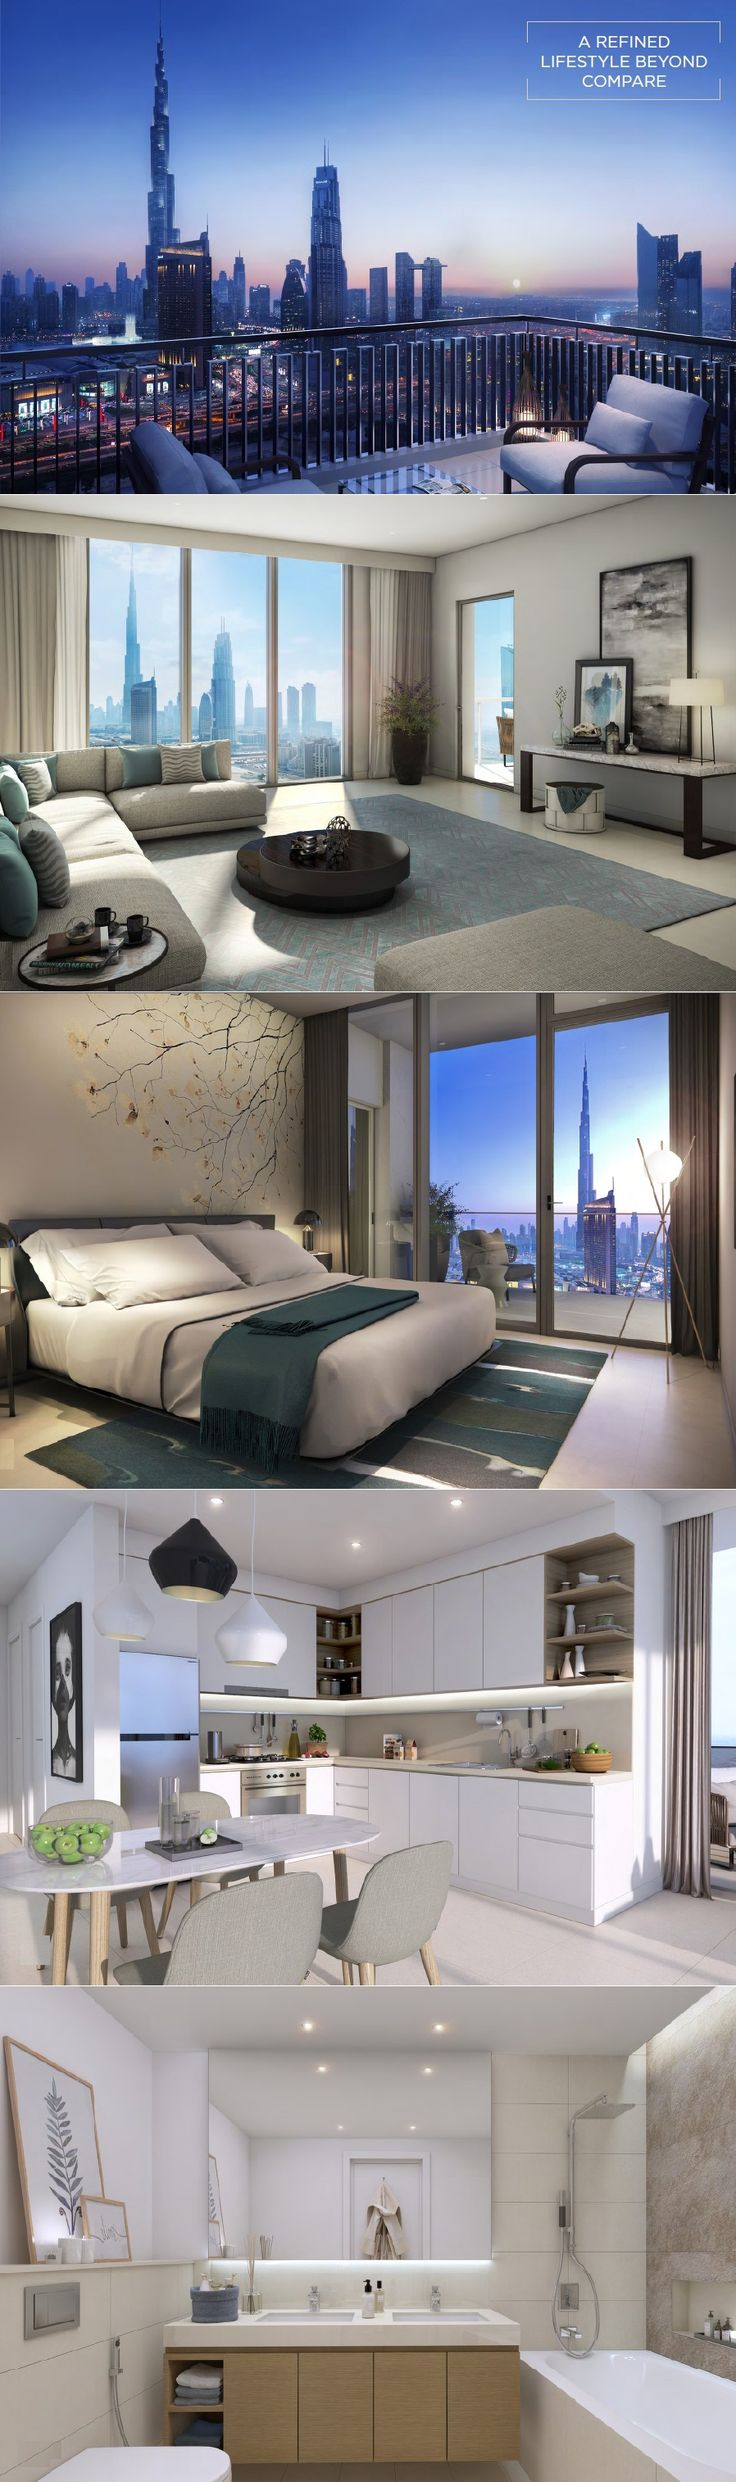 Launching Emaar Downtown Views 2 Dubai - 1/2/3 Luxury Apartments @ 5% down payment - Exclusive Offers by Auric Acres Real Estate Dubai UAE http://www.auric-acres.com/emaar-downtown-views/